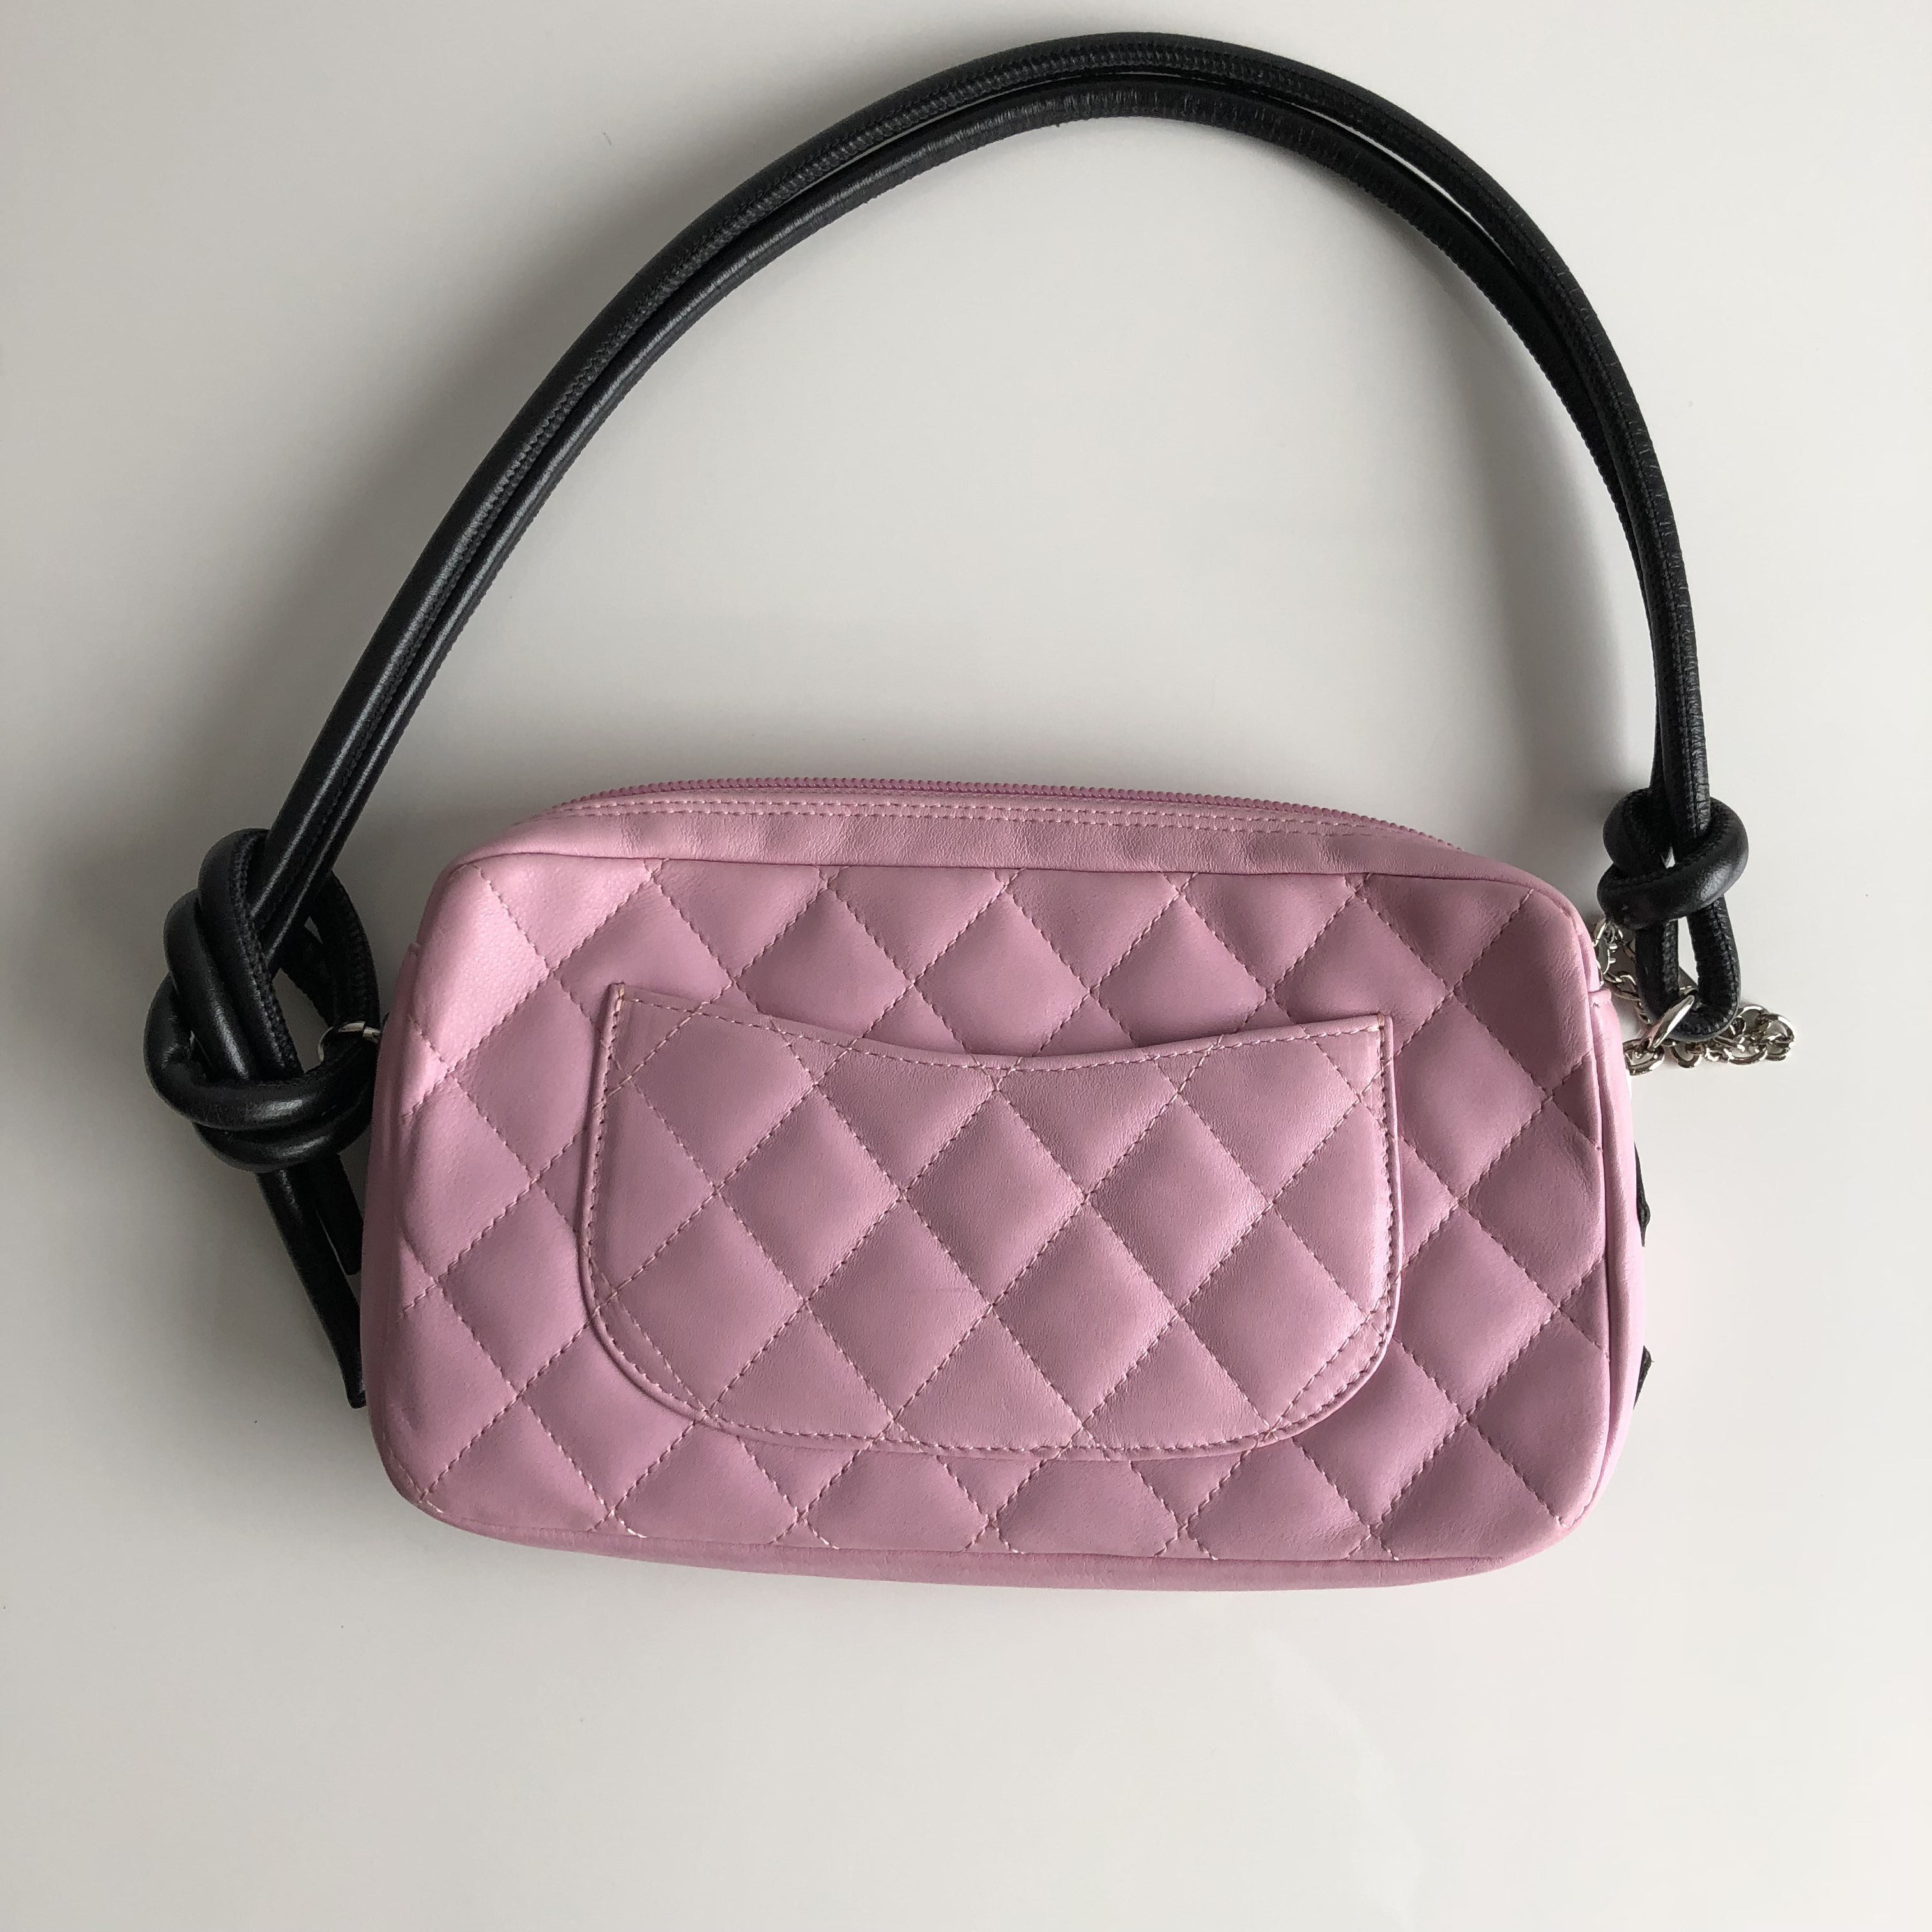 Authentic CHANEL Pink Cambon Pochette